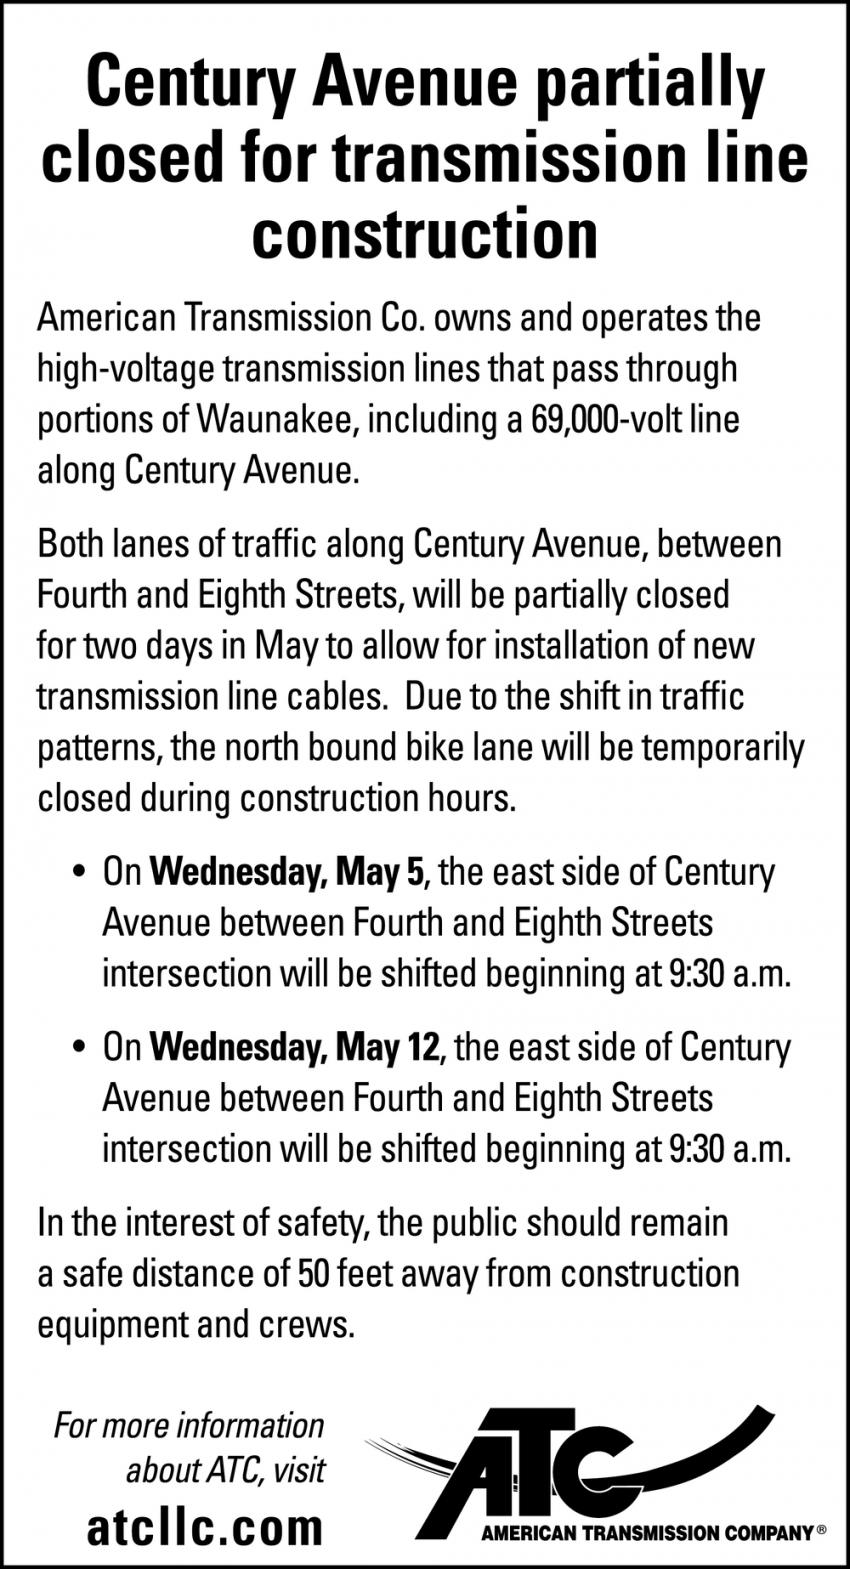 Century Avenue Partially Closed for Transmission Line Construction